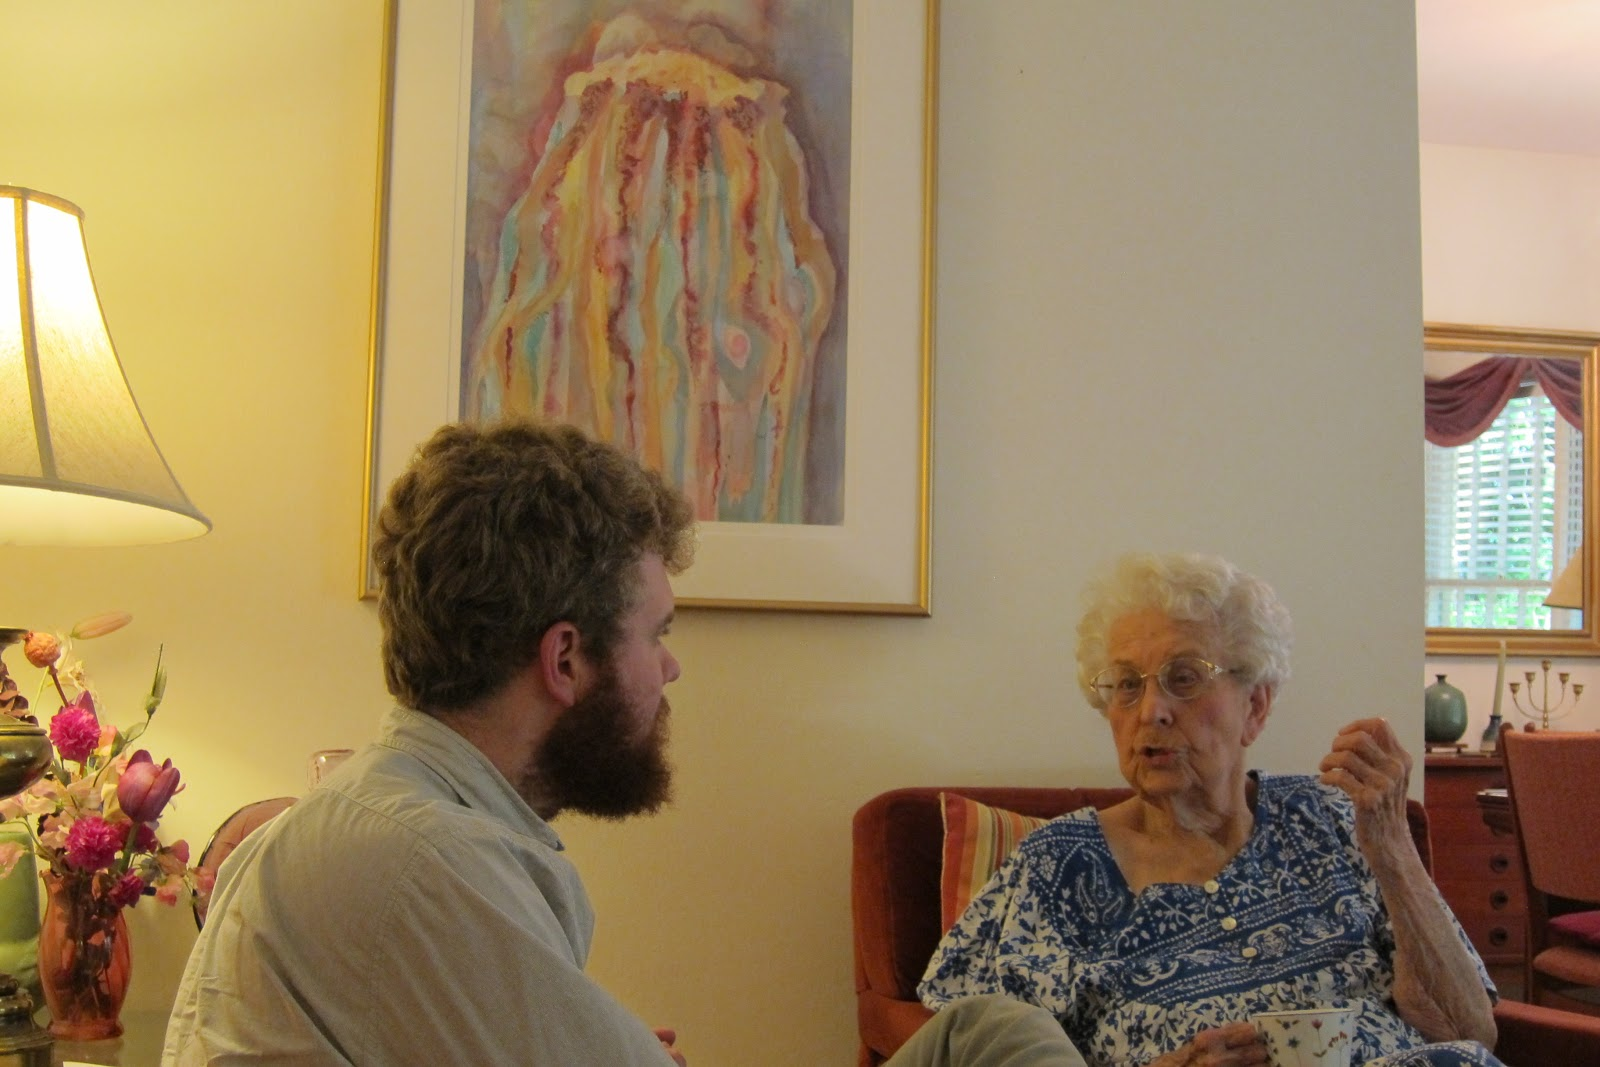 Male interviewing older woman at her home